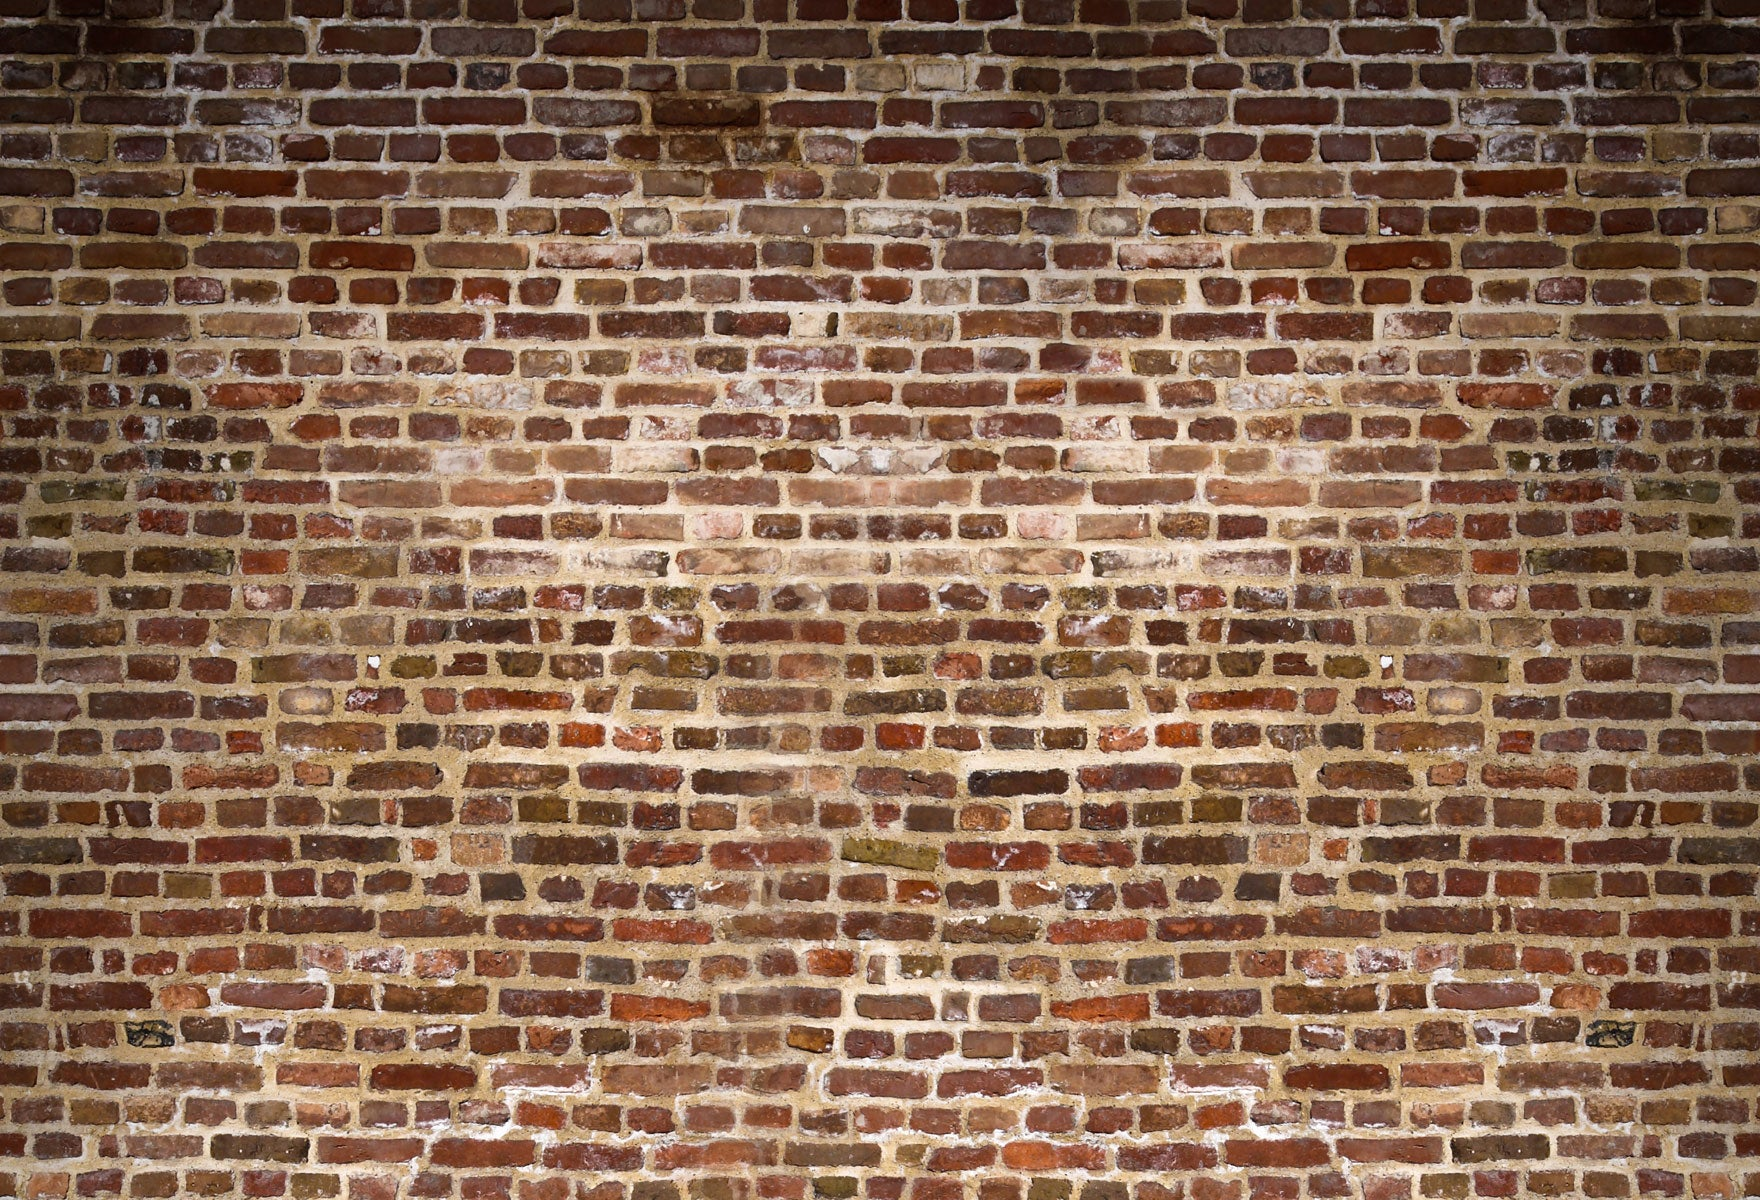 Load image into Gallery viewer, Kate Distressed Brick Wall Backdrop for Photography